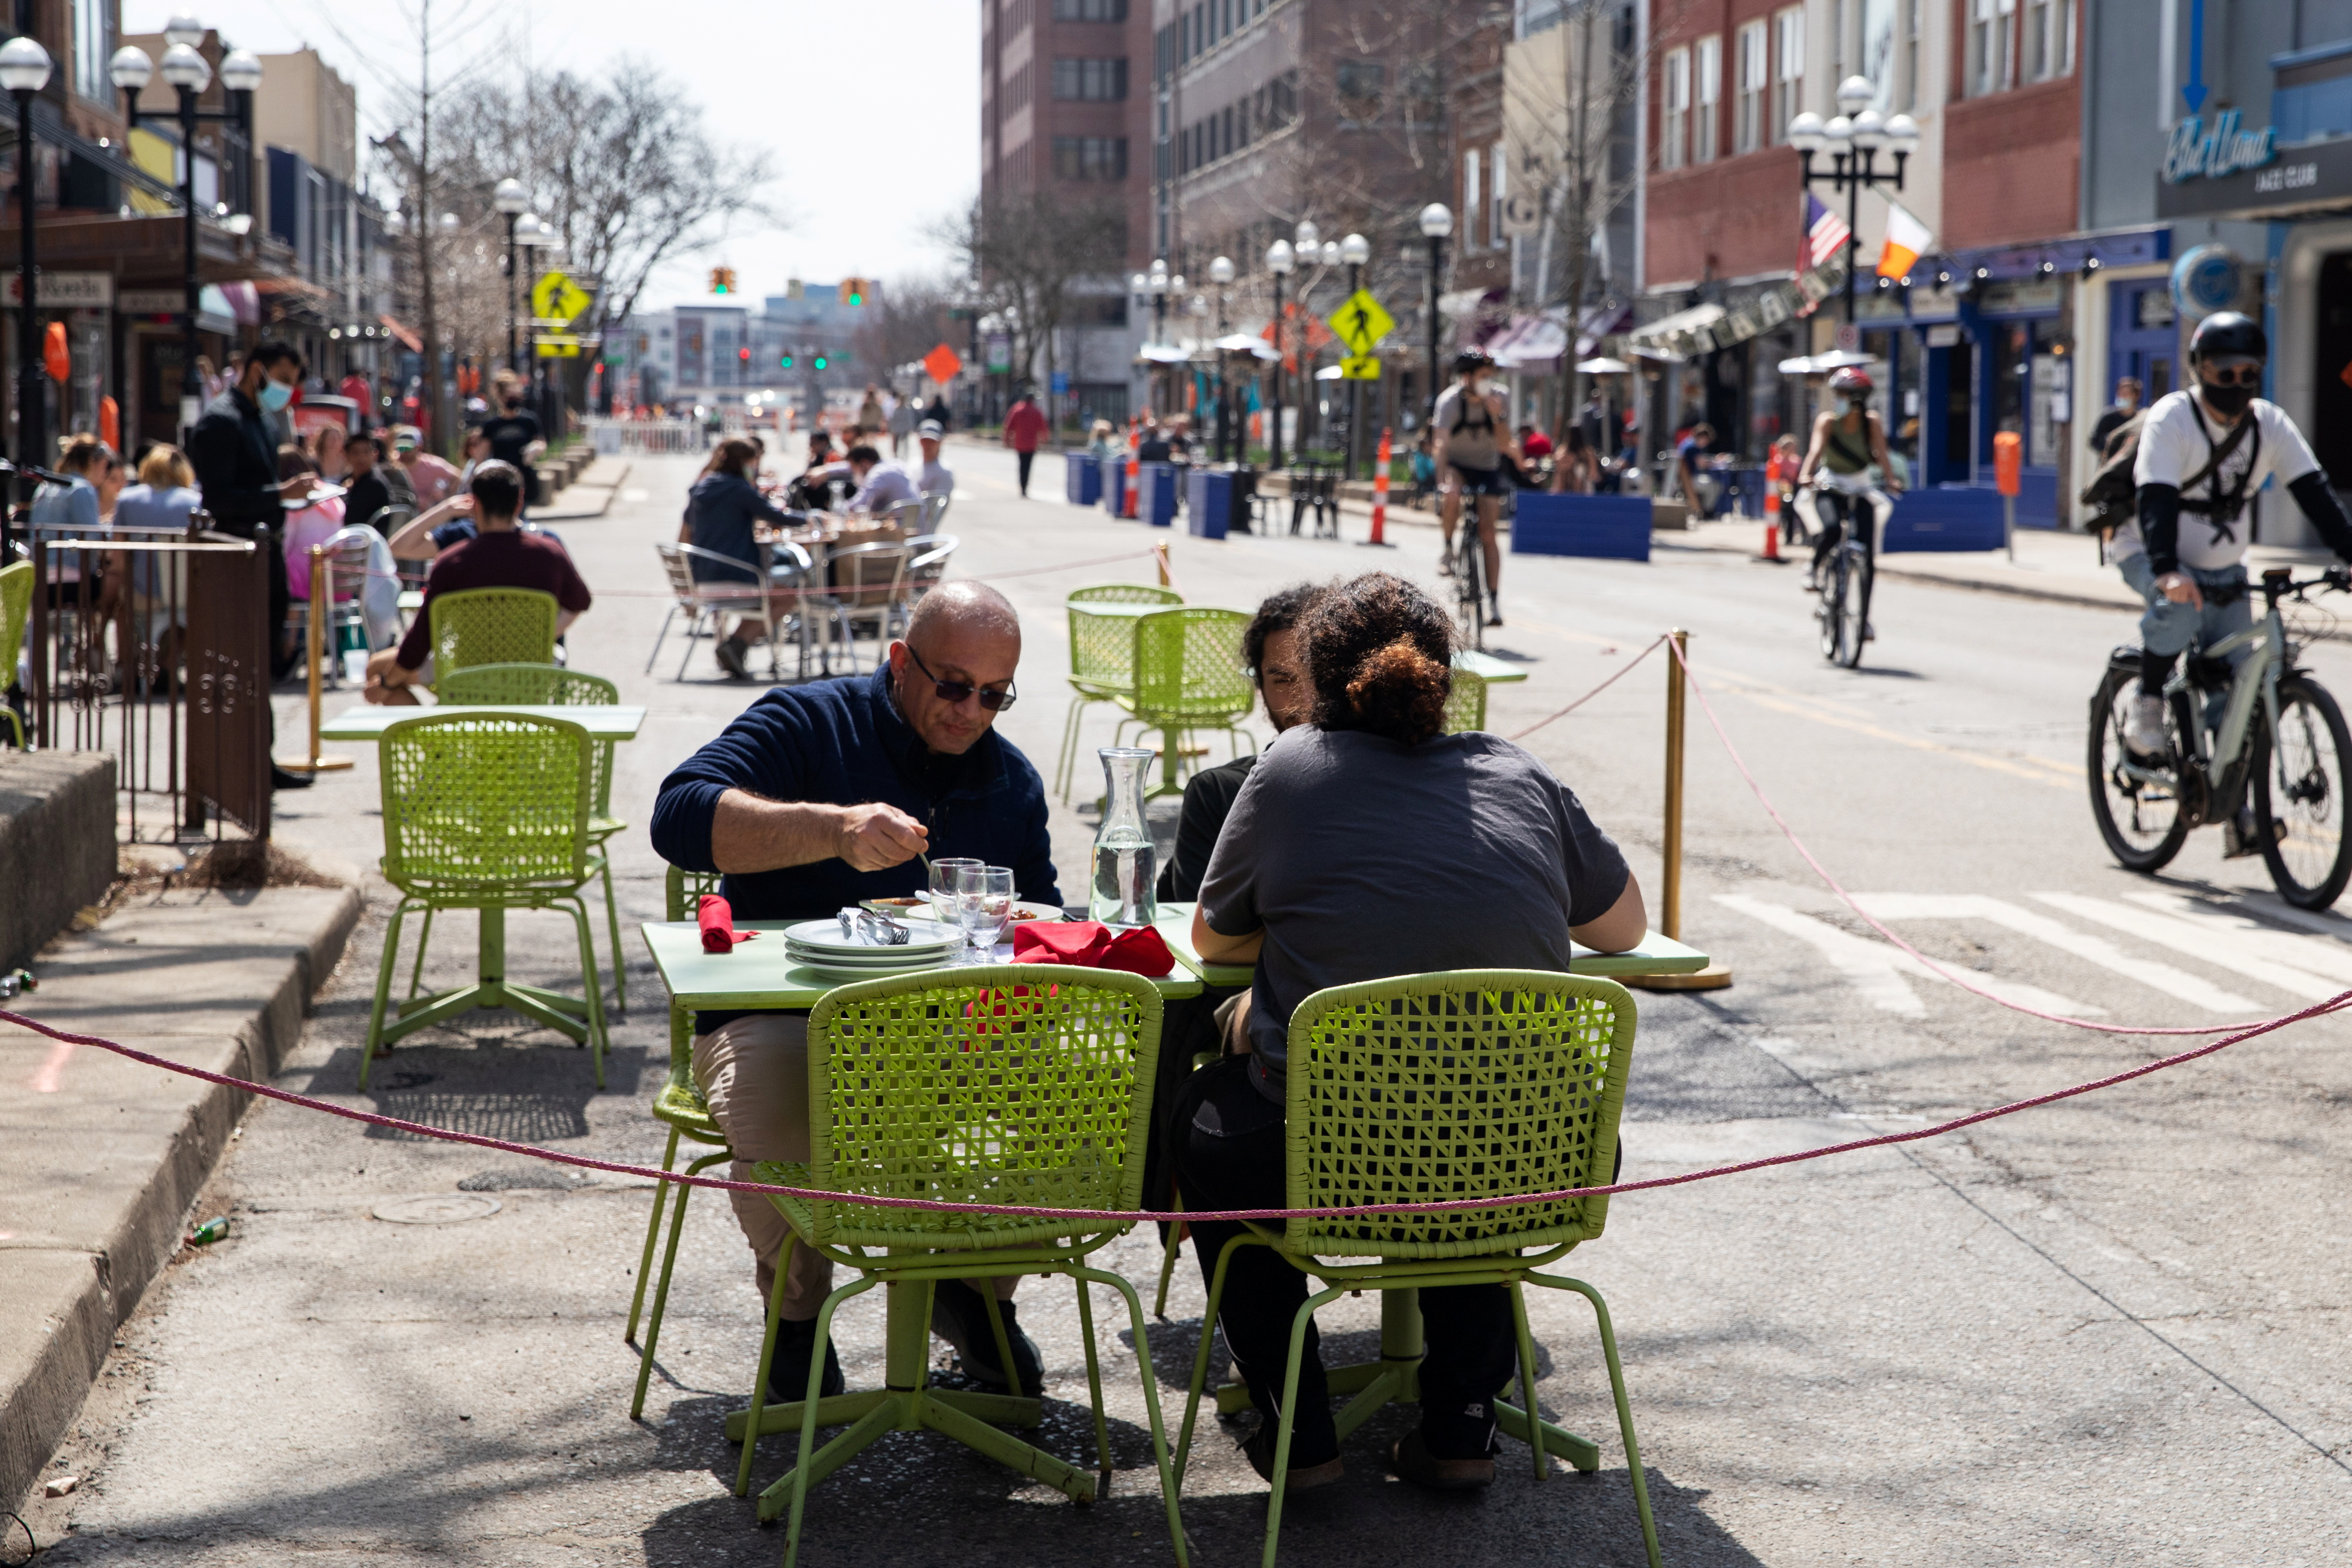 People crowd outdoor dining at a restaurant as coronavirus disease (COVID-19) restrictions are eased in Ann Arbor, Michigan, U.S., April 4, 2021.  REUTERS/Emily Elconin